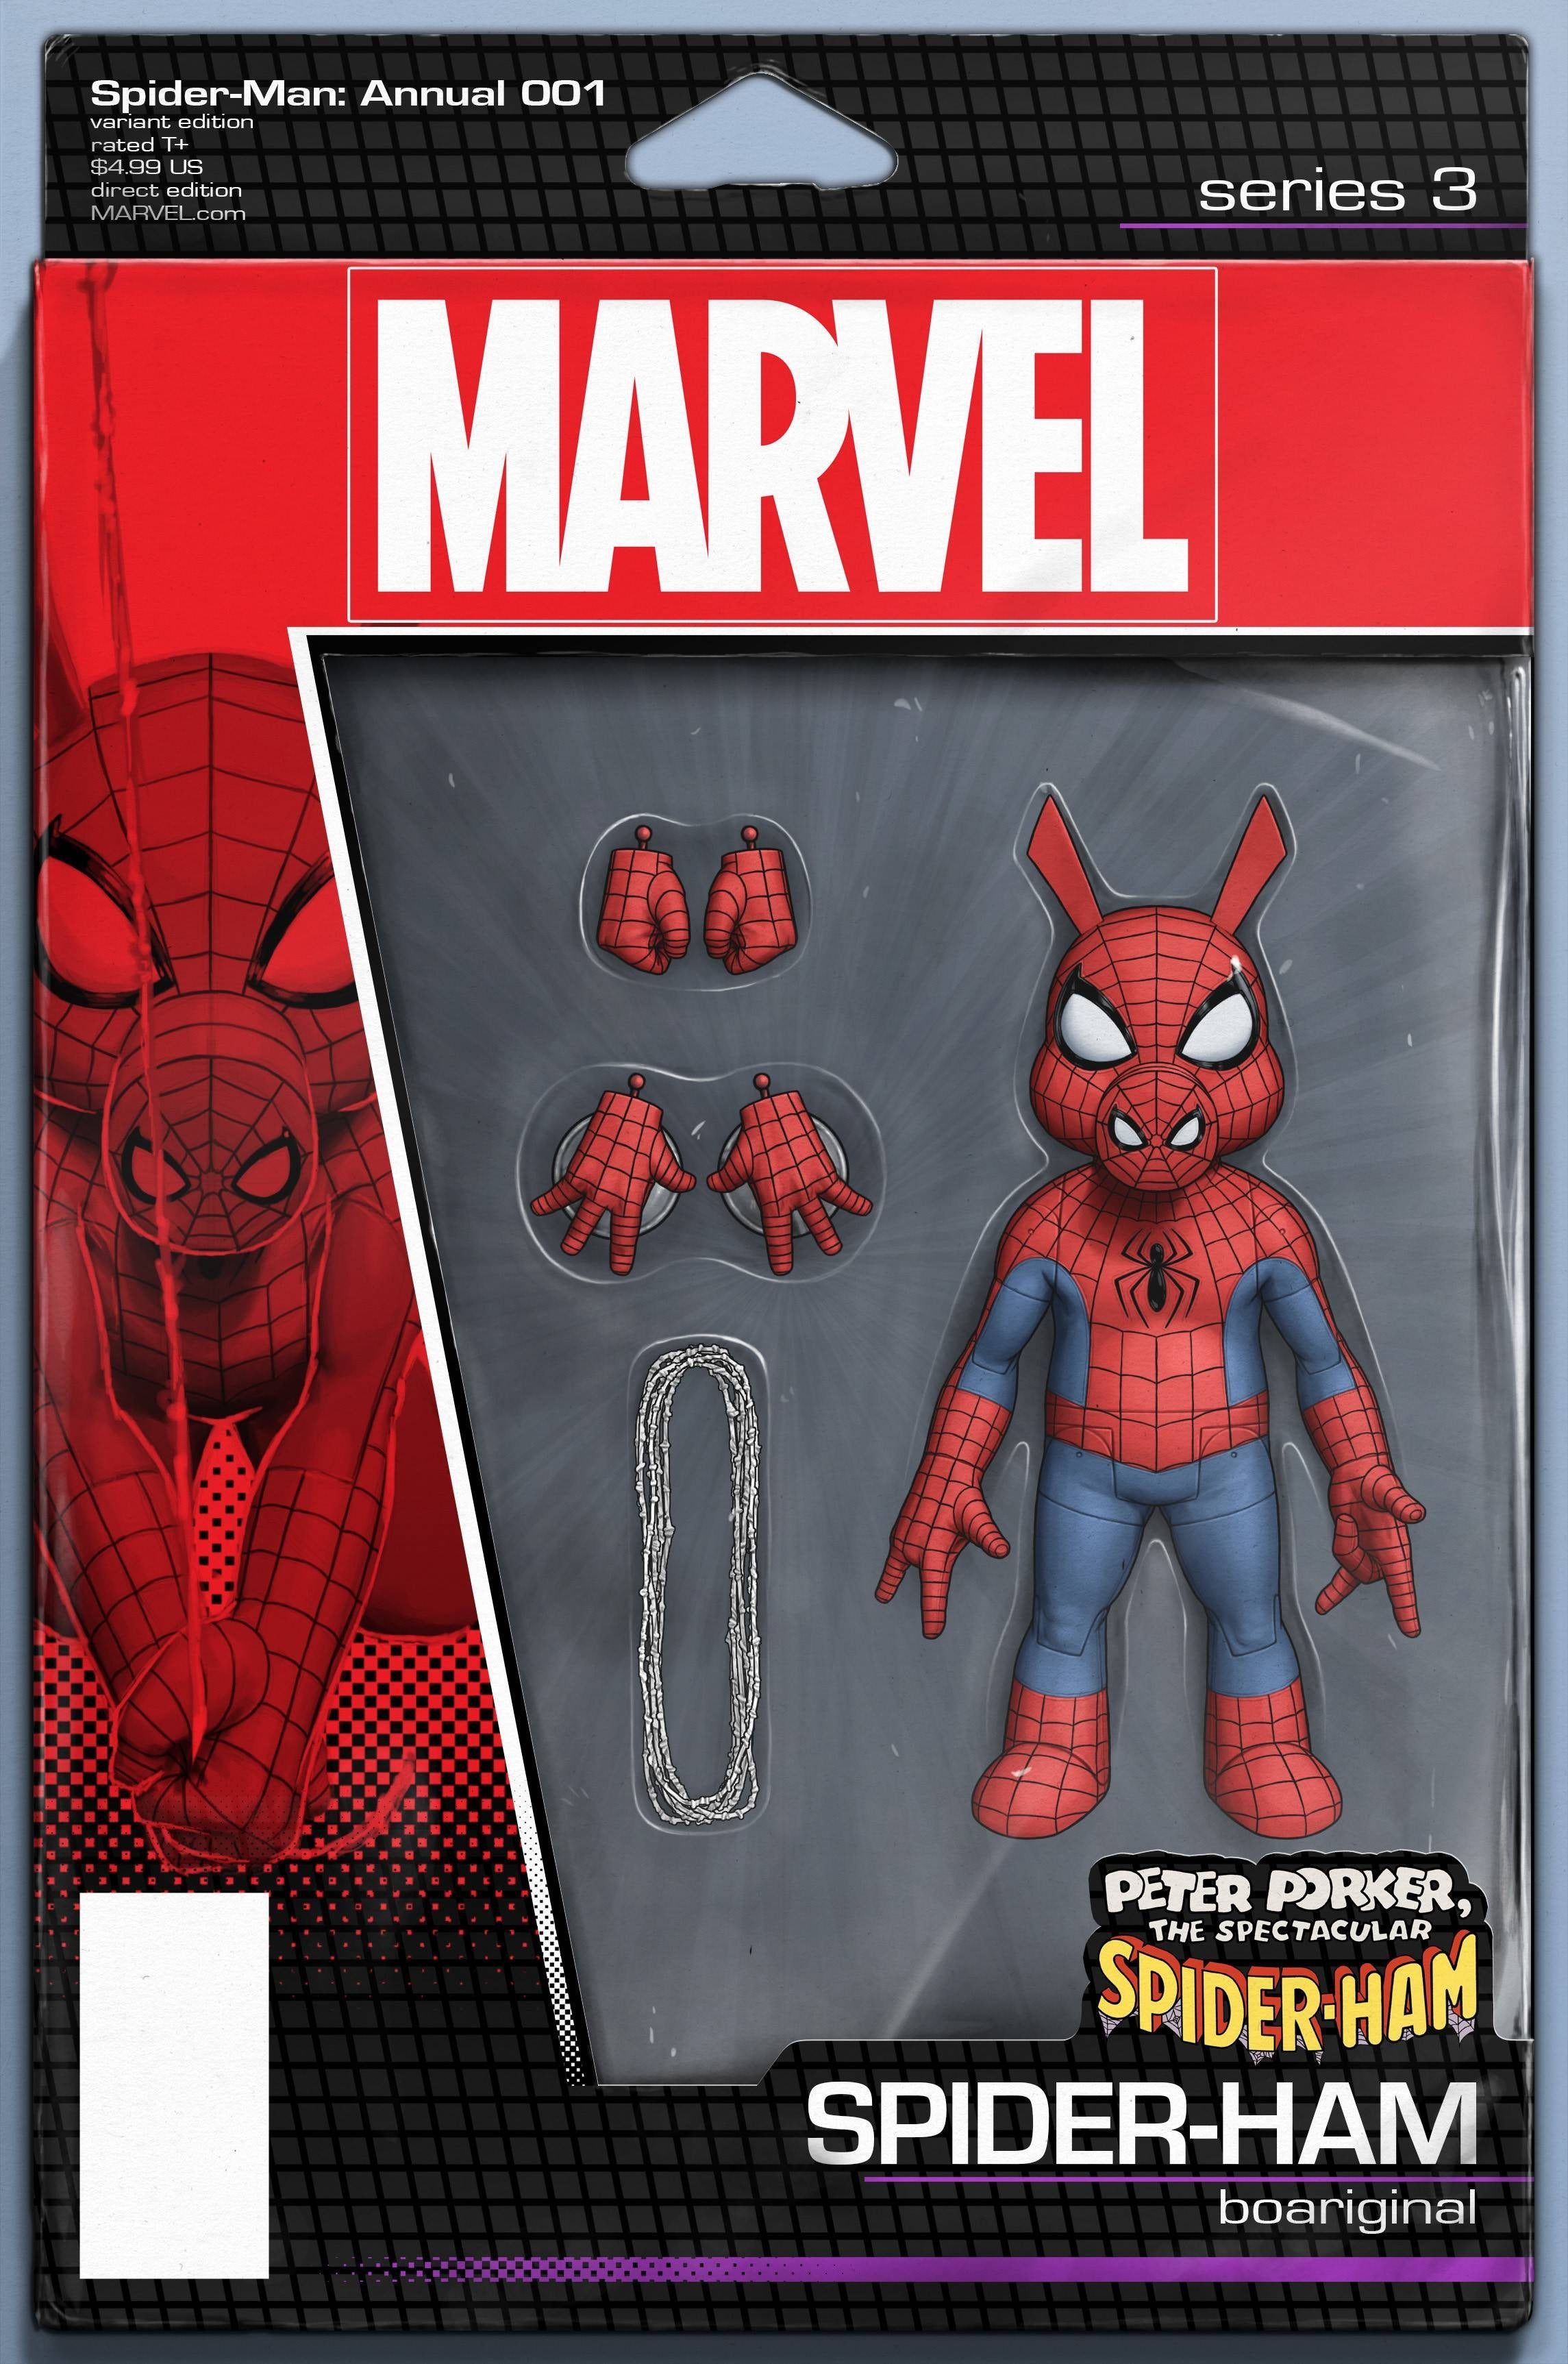 06/26/2019 SPIDER-MAN ANNUAL #1 CHRISTOPHER ACTION FIGURE VAR